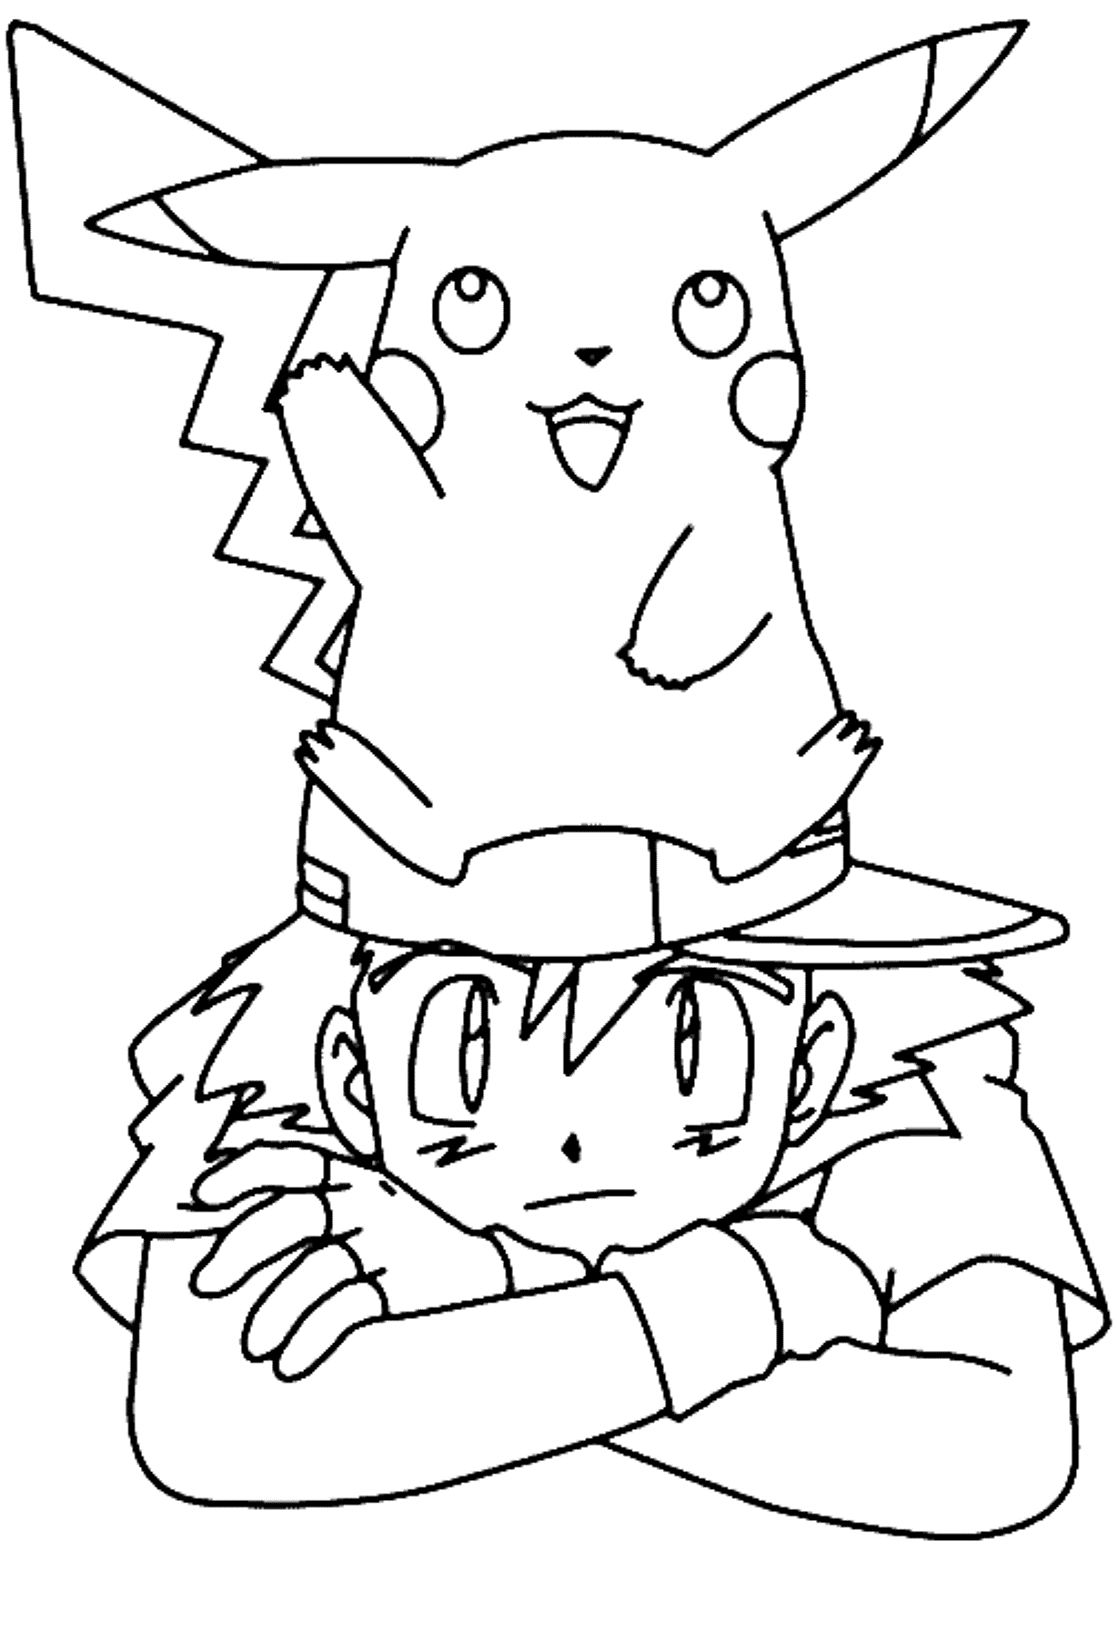 Pikachu Coloring Pages - Pokemon Cute Pikachu Coloring Pages Womanmate